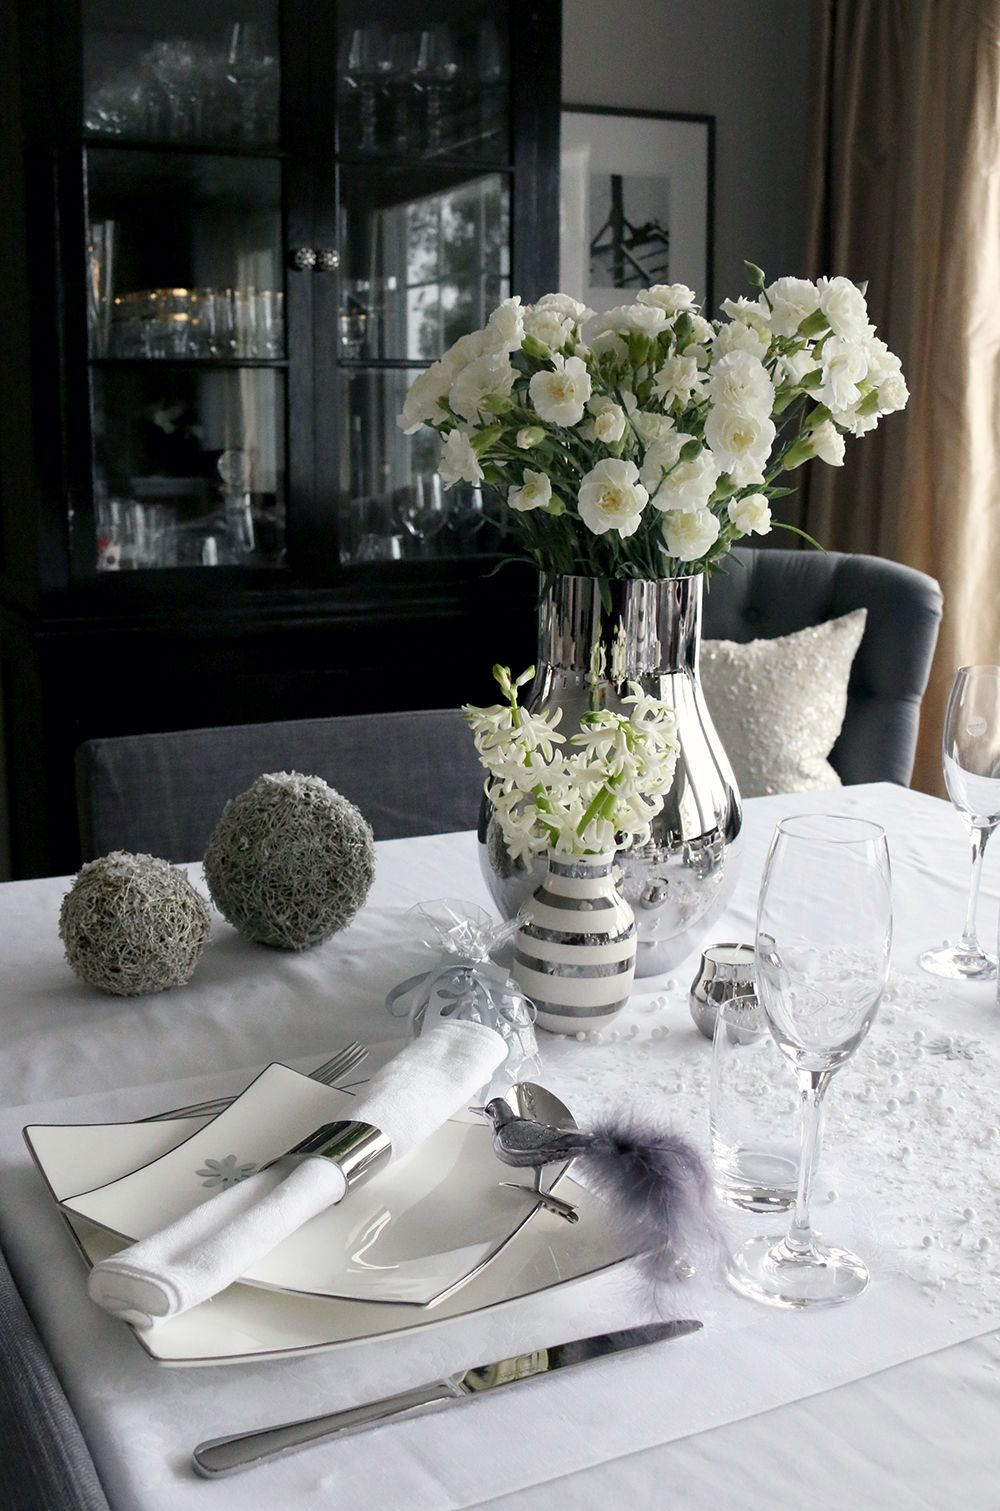 Tablesetting New Year, white, grey. Photo: Anette Willemine Solheim http://anettewillemine.com/happy-new-year/ http://www.tilbords.no/